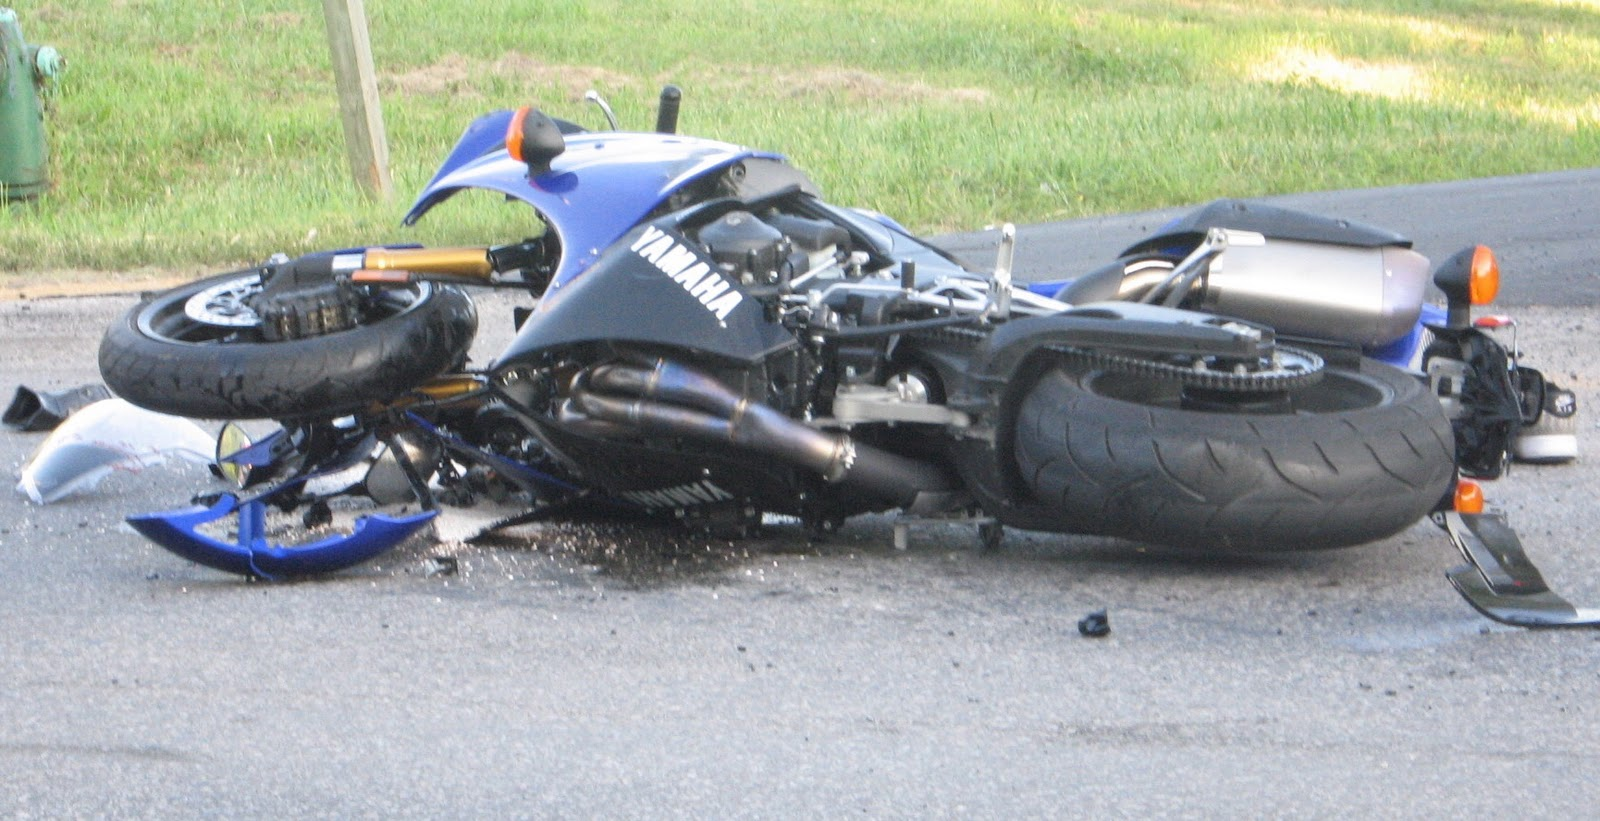 Motorcycle Accident Of Photos Car Motor Pictures